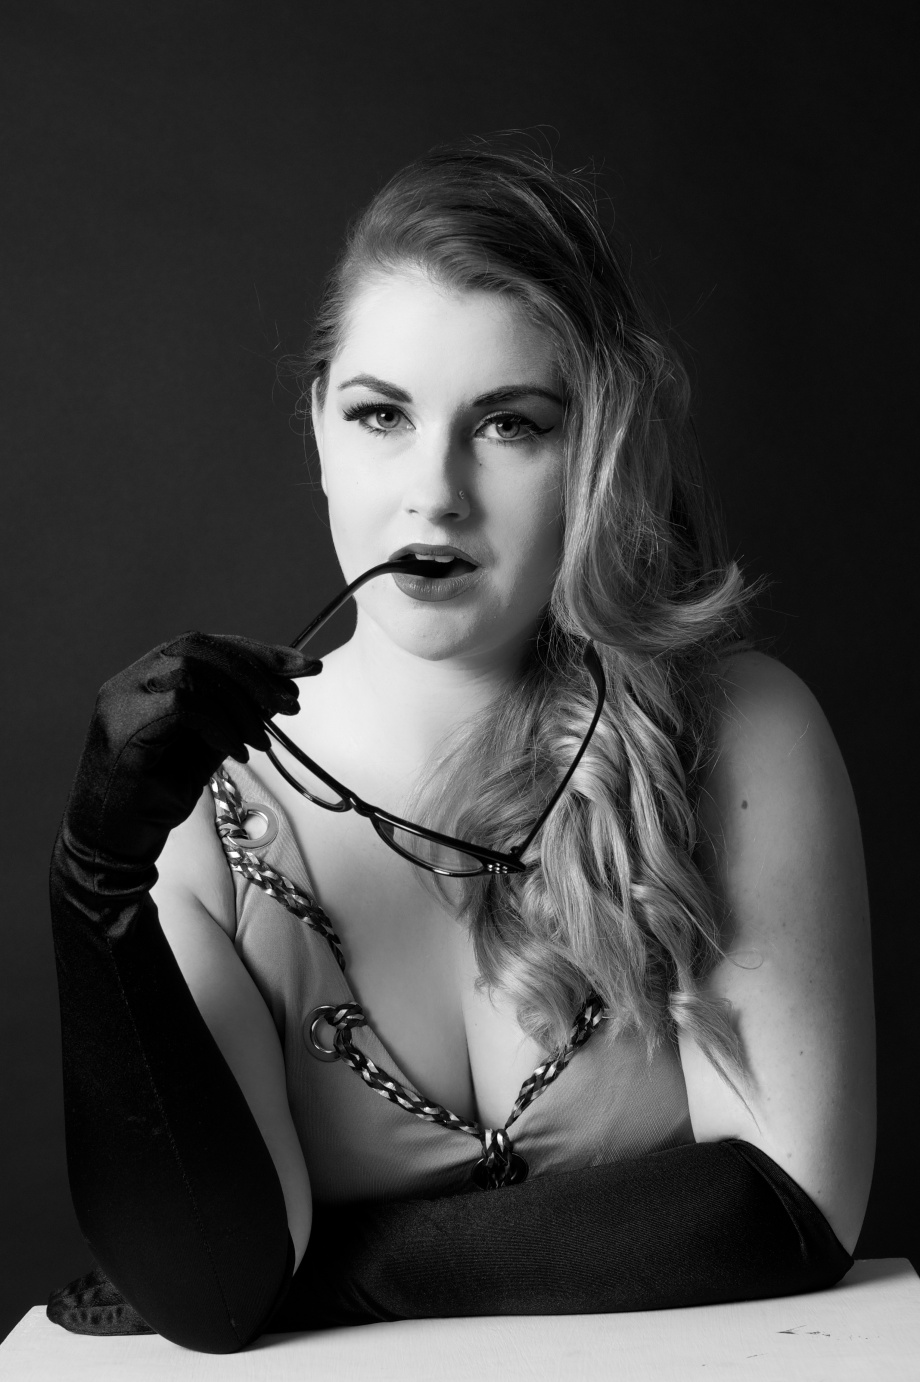 Noir, portrait, black and white, glamour, cork, ireland, Die Baroness, studio, photography